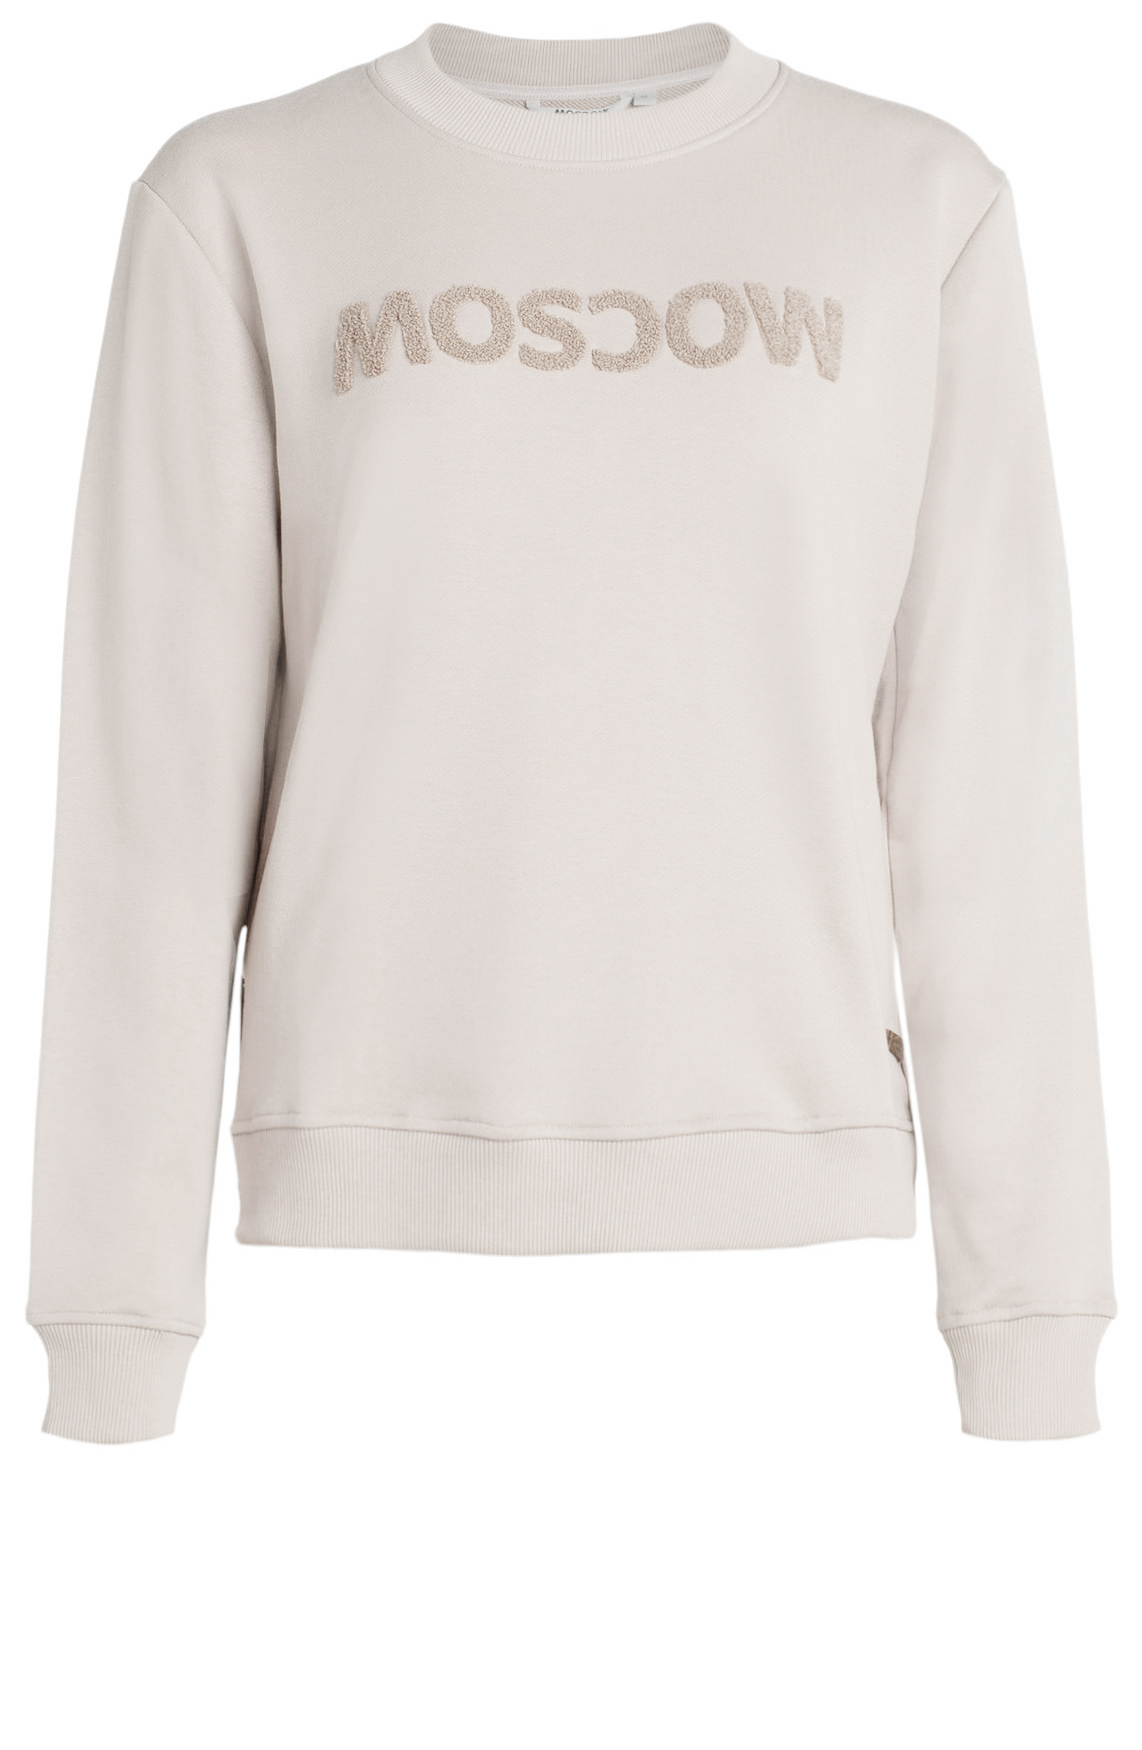 Moscow Dames Sweater with Moscow logo Ecru